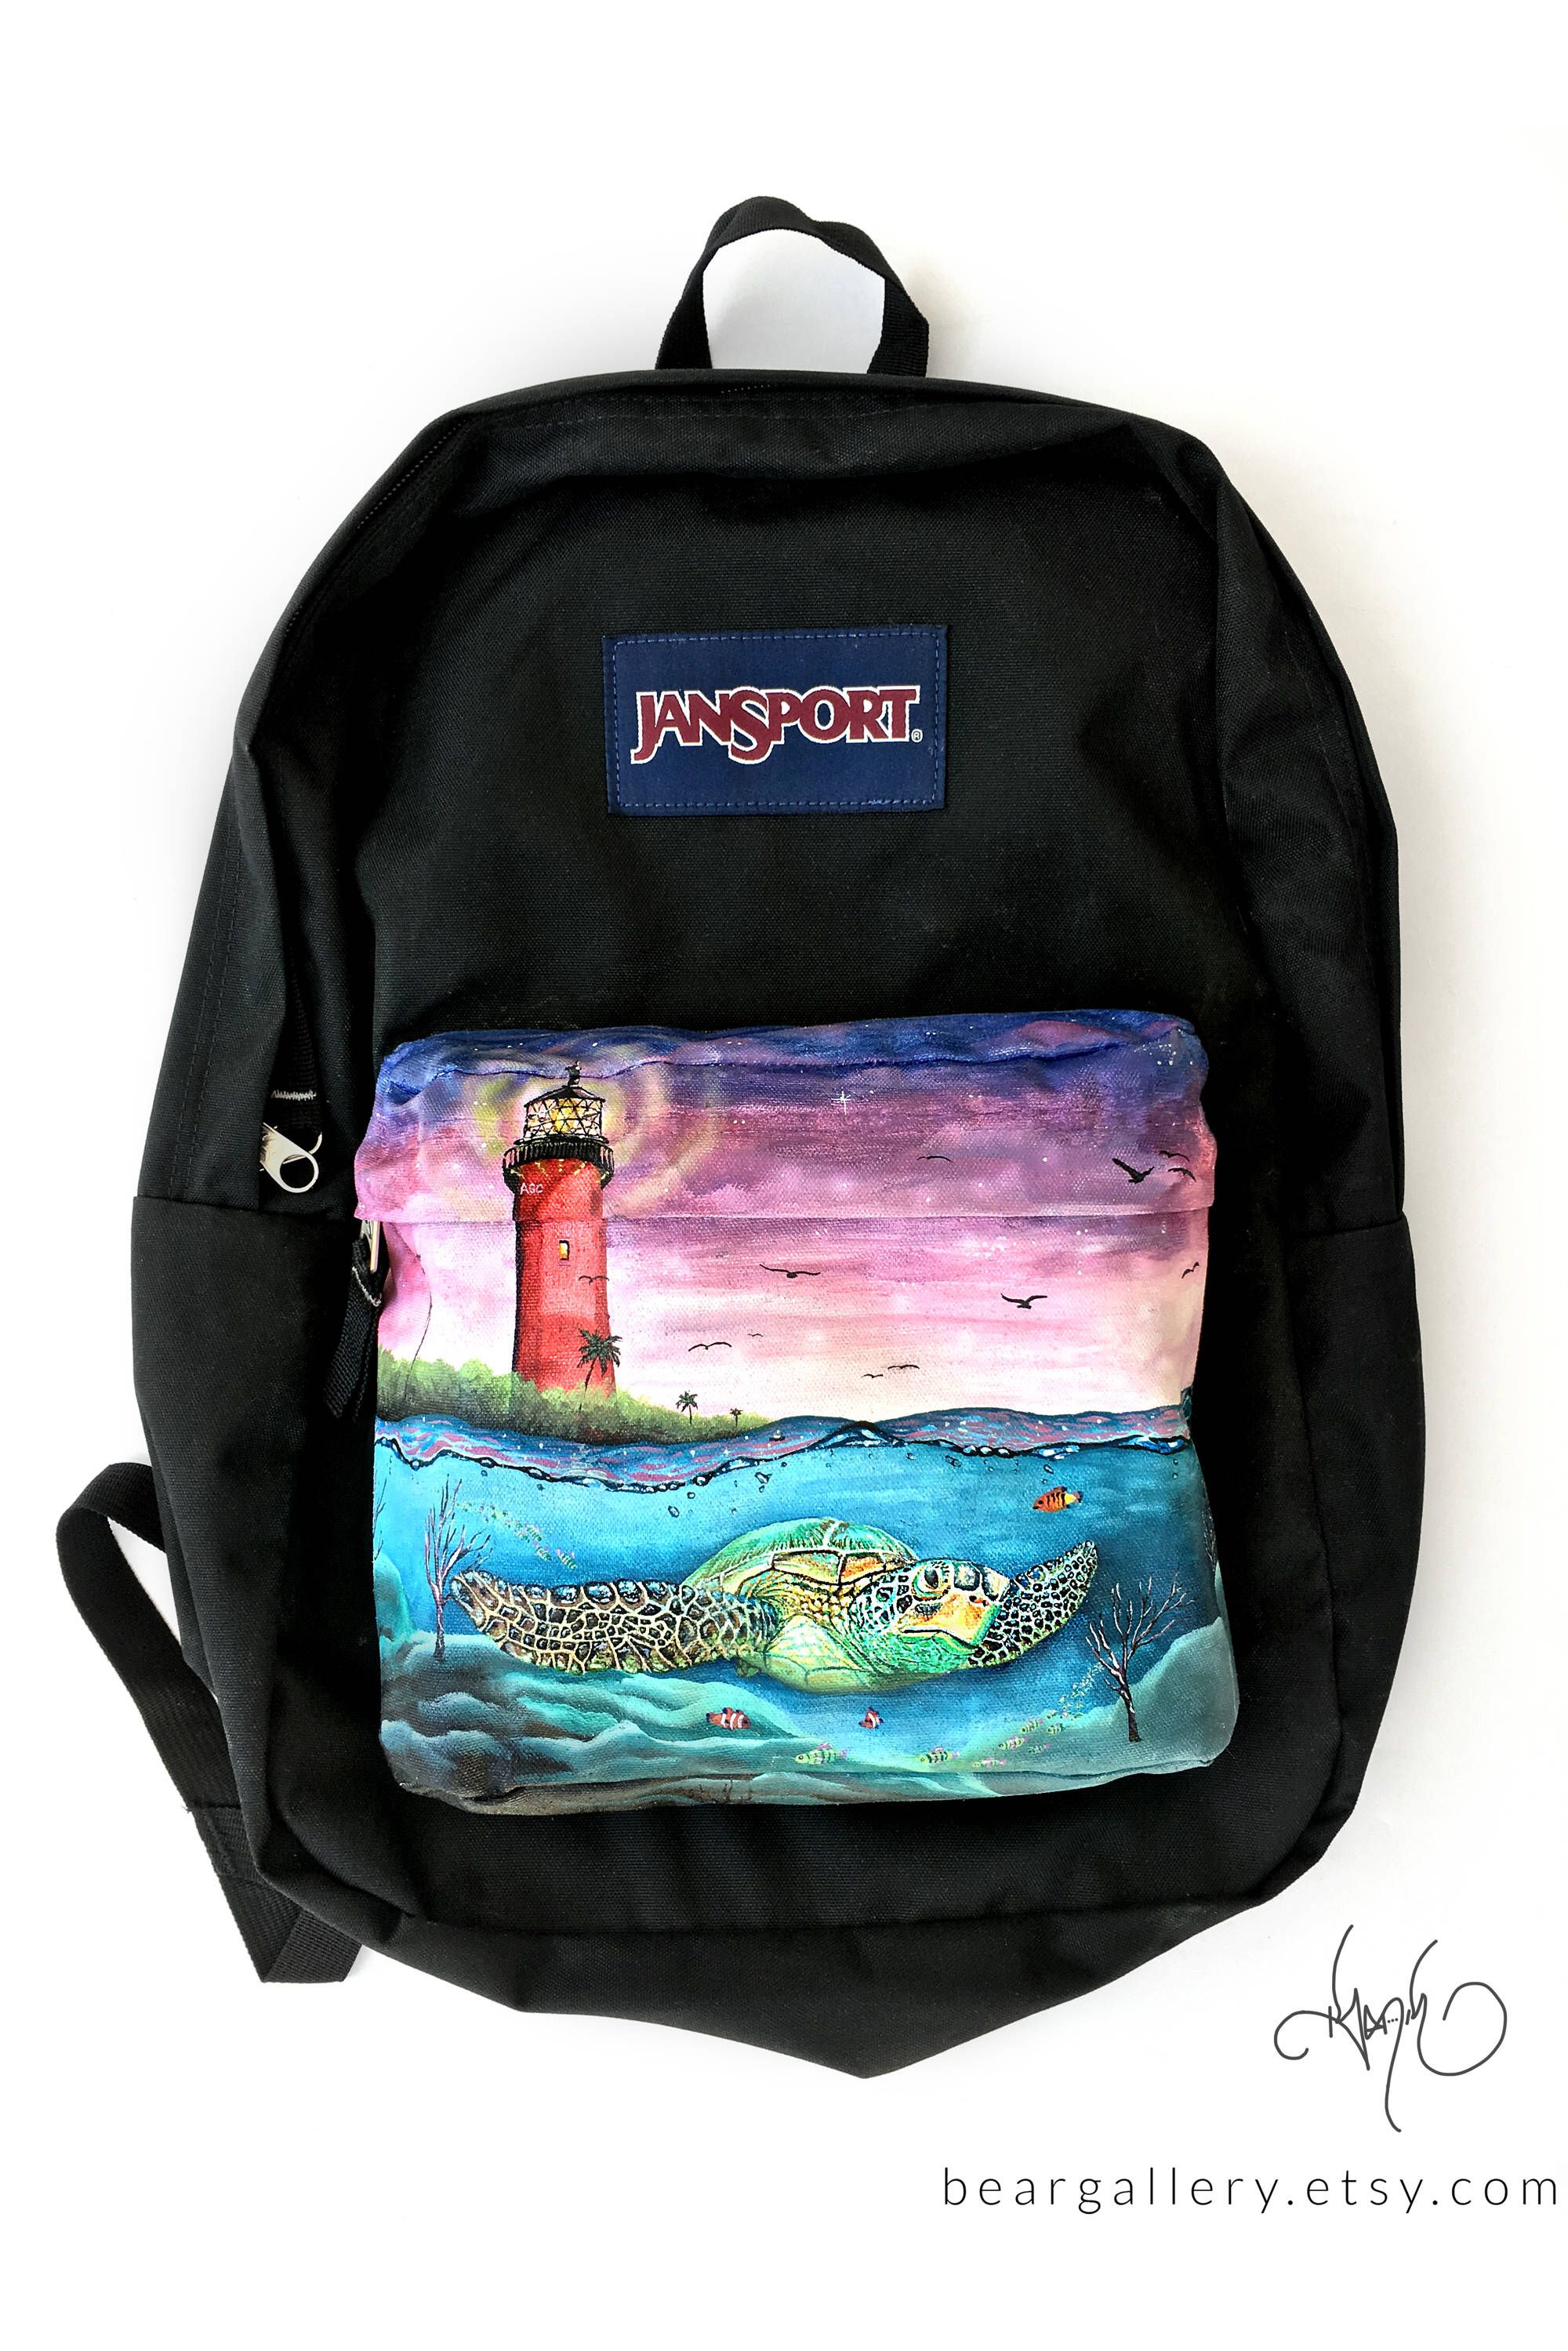 25cc7646d0c0 Custom Painted Sea Turtle JanSport Backpack - Hand Painted Sea ...